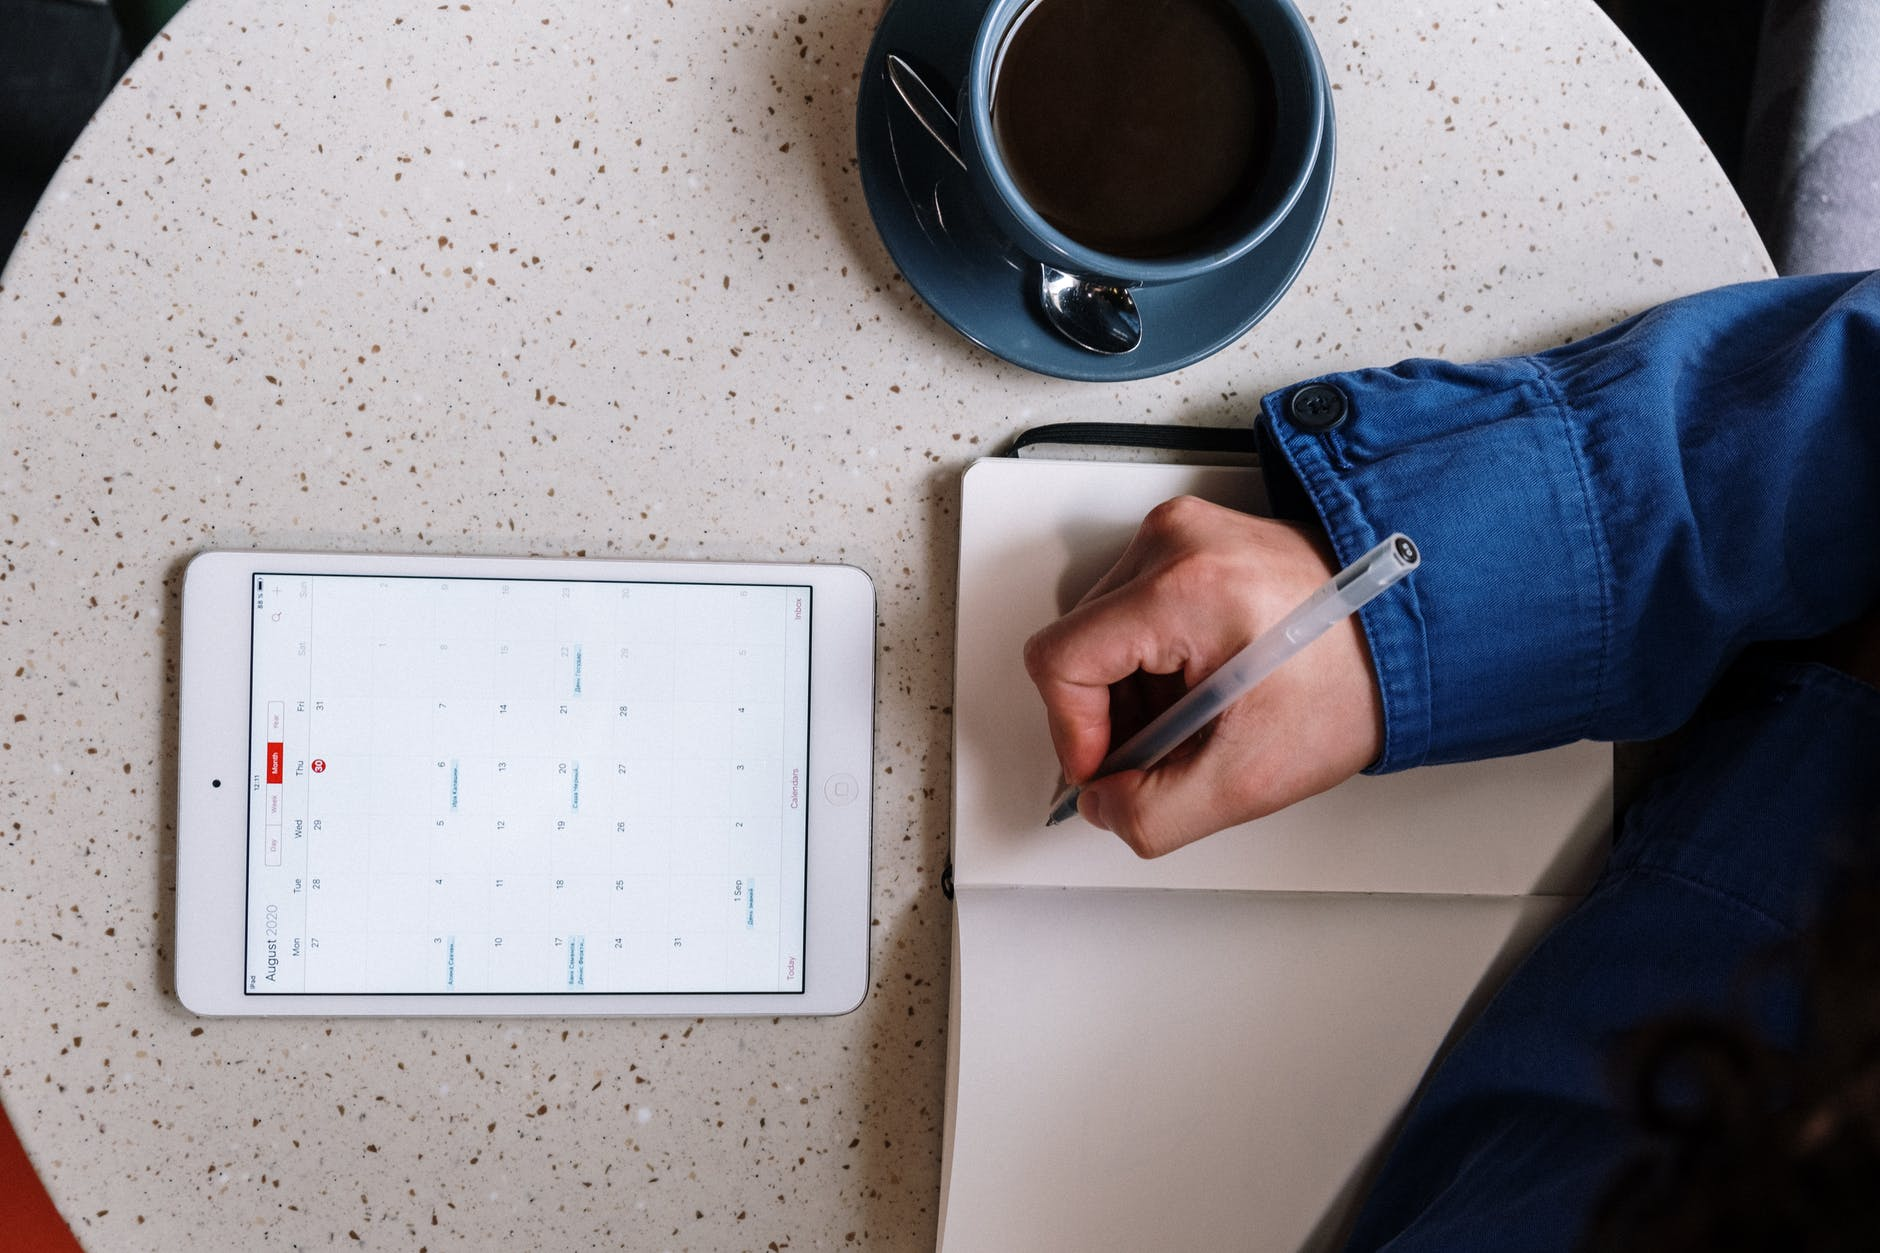 person holding pen and checking calendar on tablet